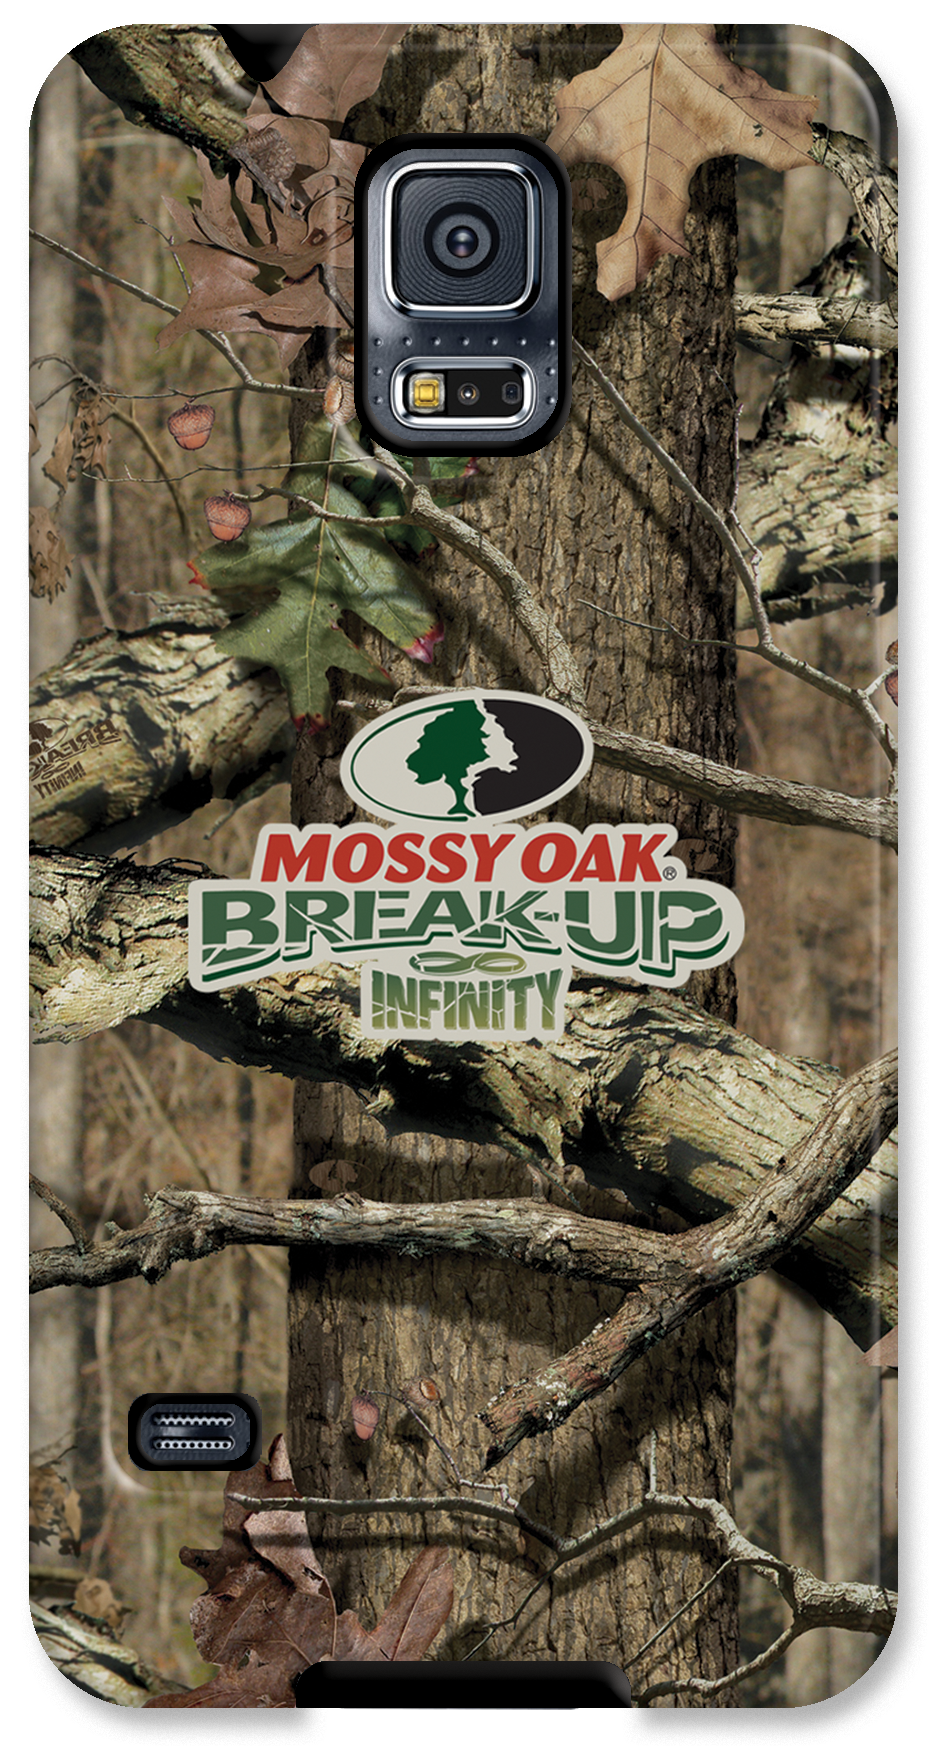 Mossy Oak Breakup Infinity